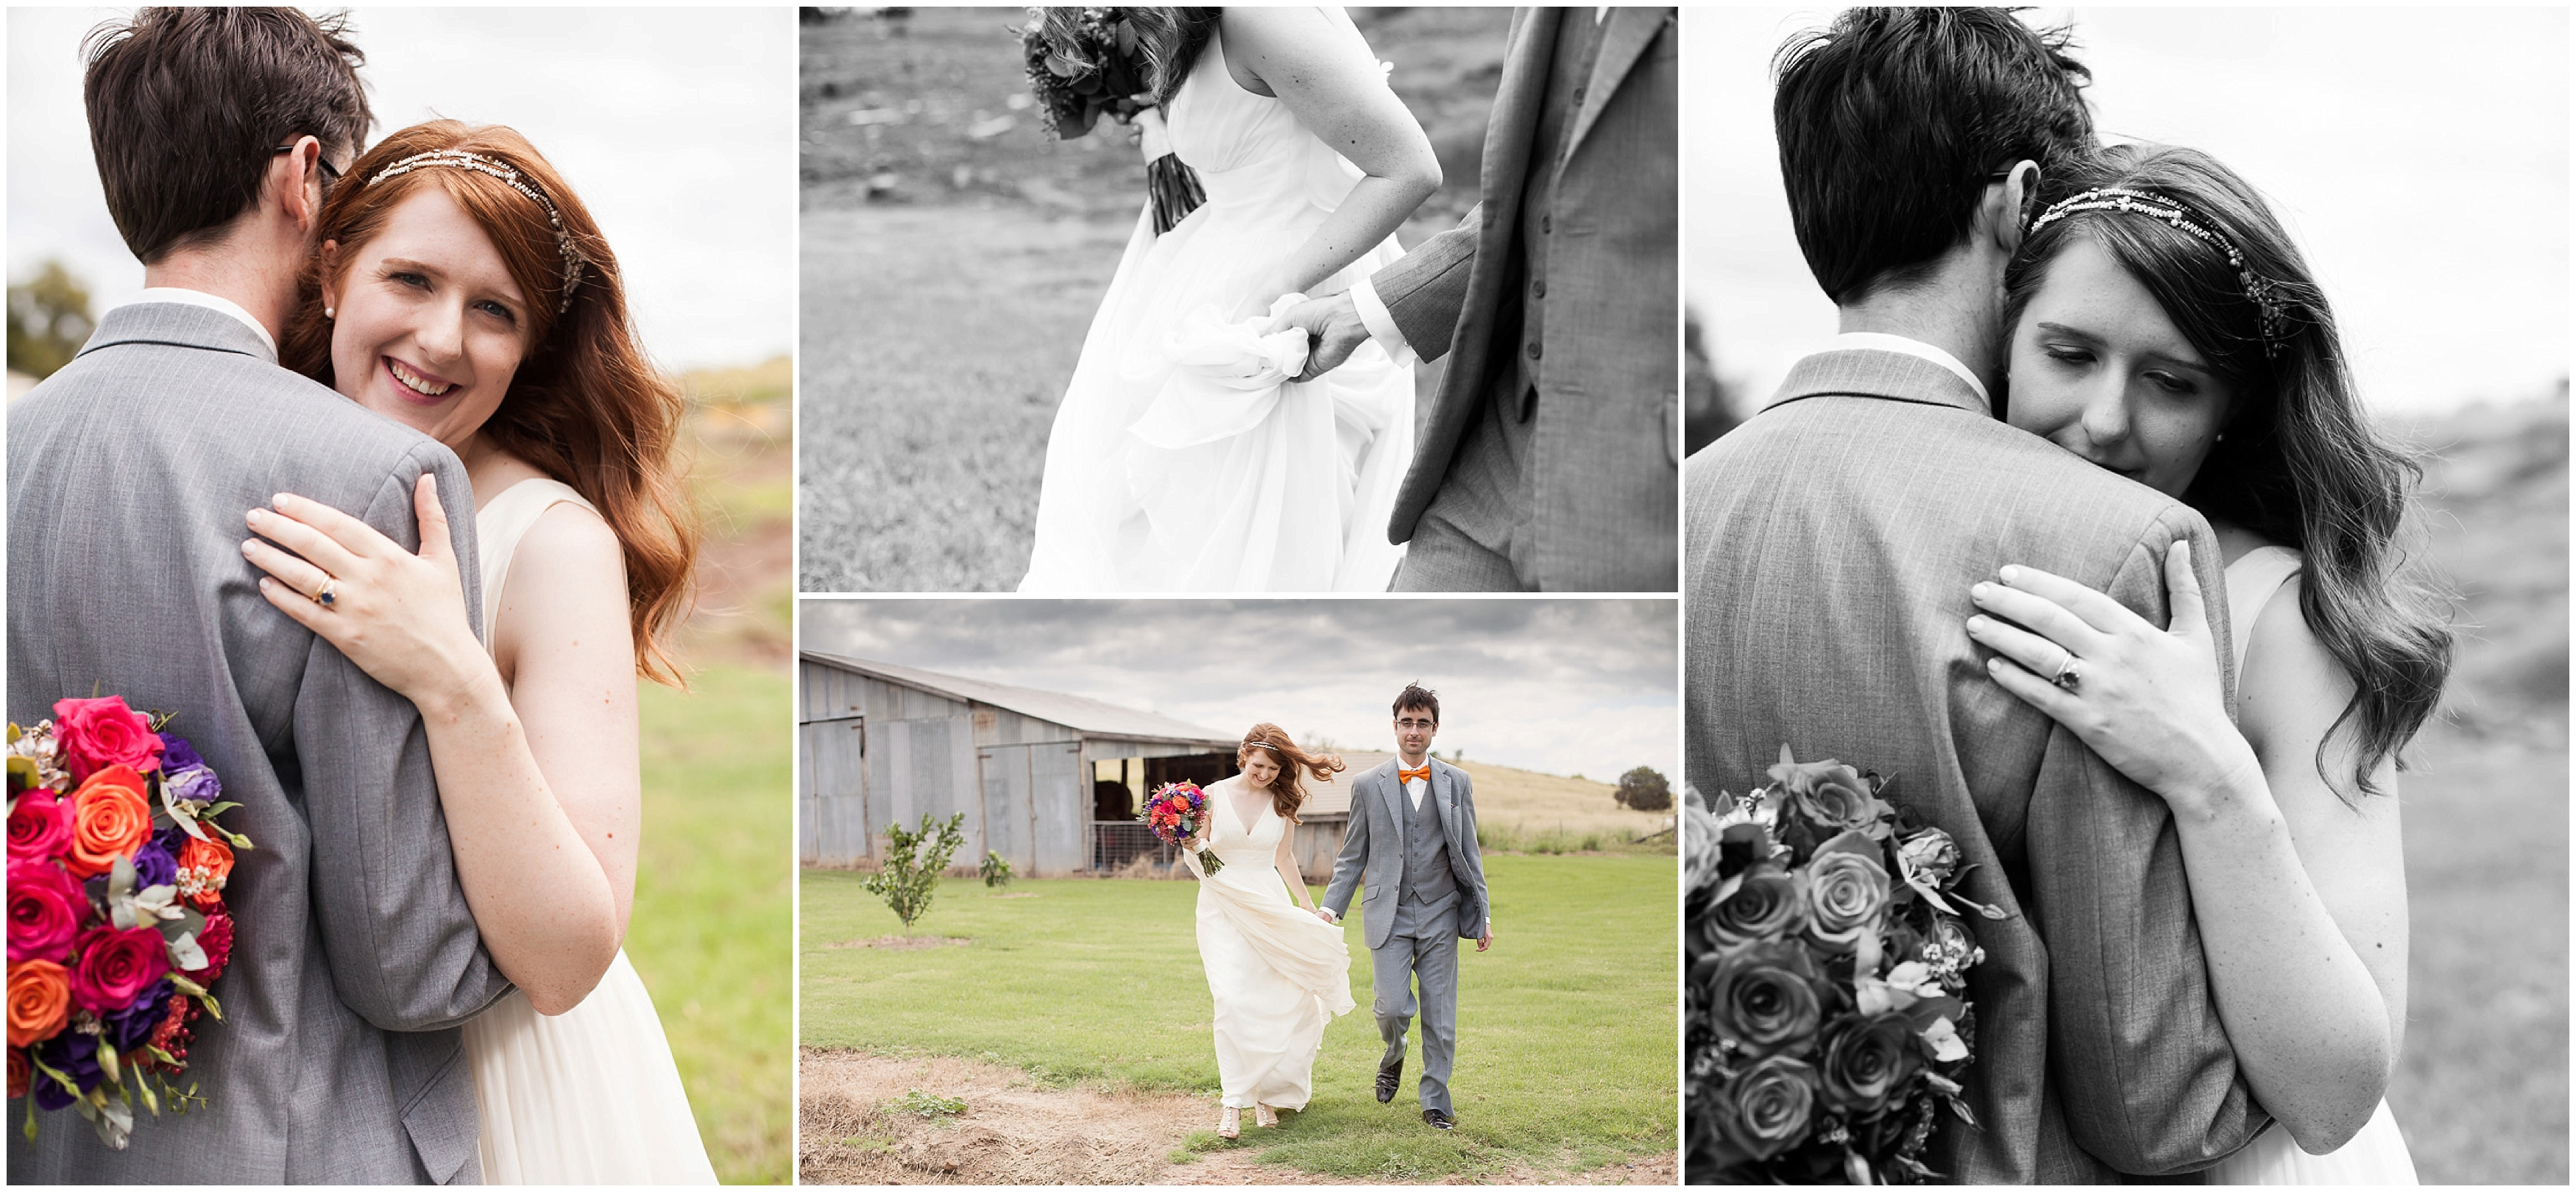 Bree & Joel // 5th April 2015 // Country Easter Wedding